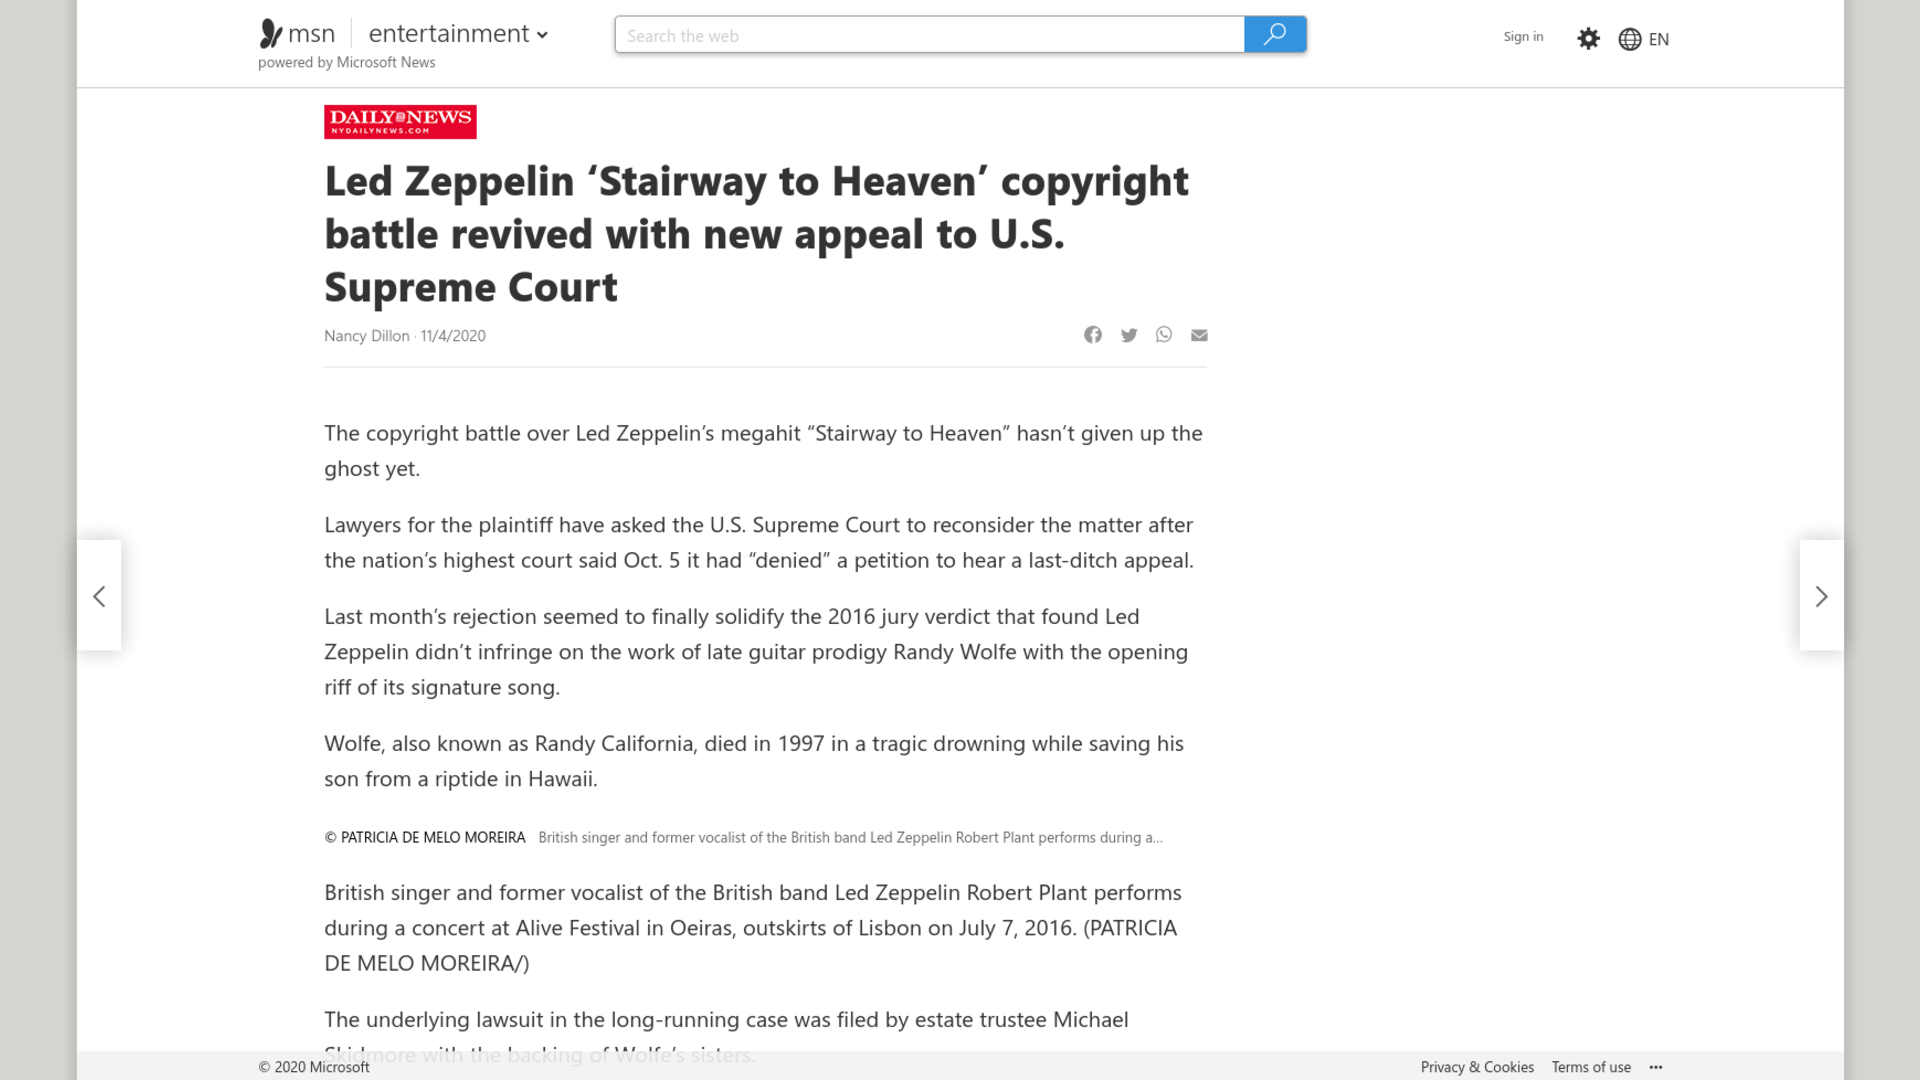 Fairness Rocks News Led Zeppelin 'Stairway to Heaven' copyright battle revived with new appeal to U.S. Supreme Court